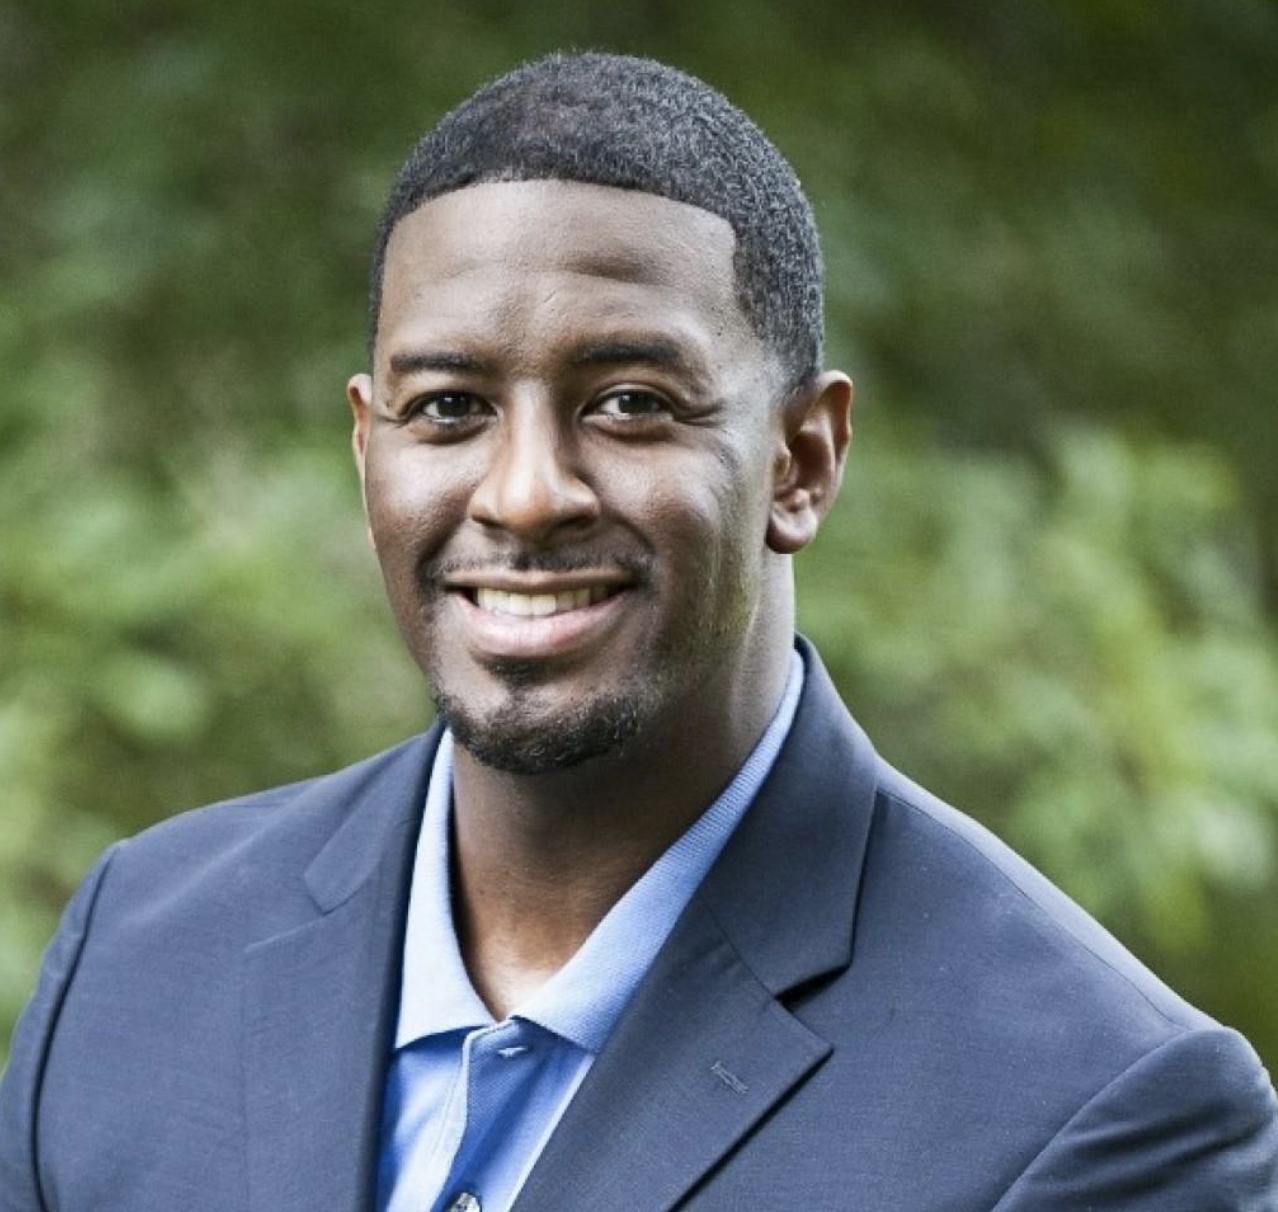 Gillum contradicts himself over Florida's economic outlook